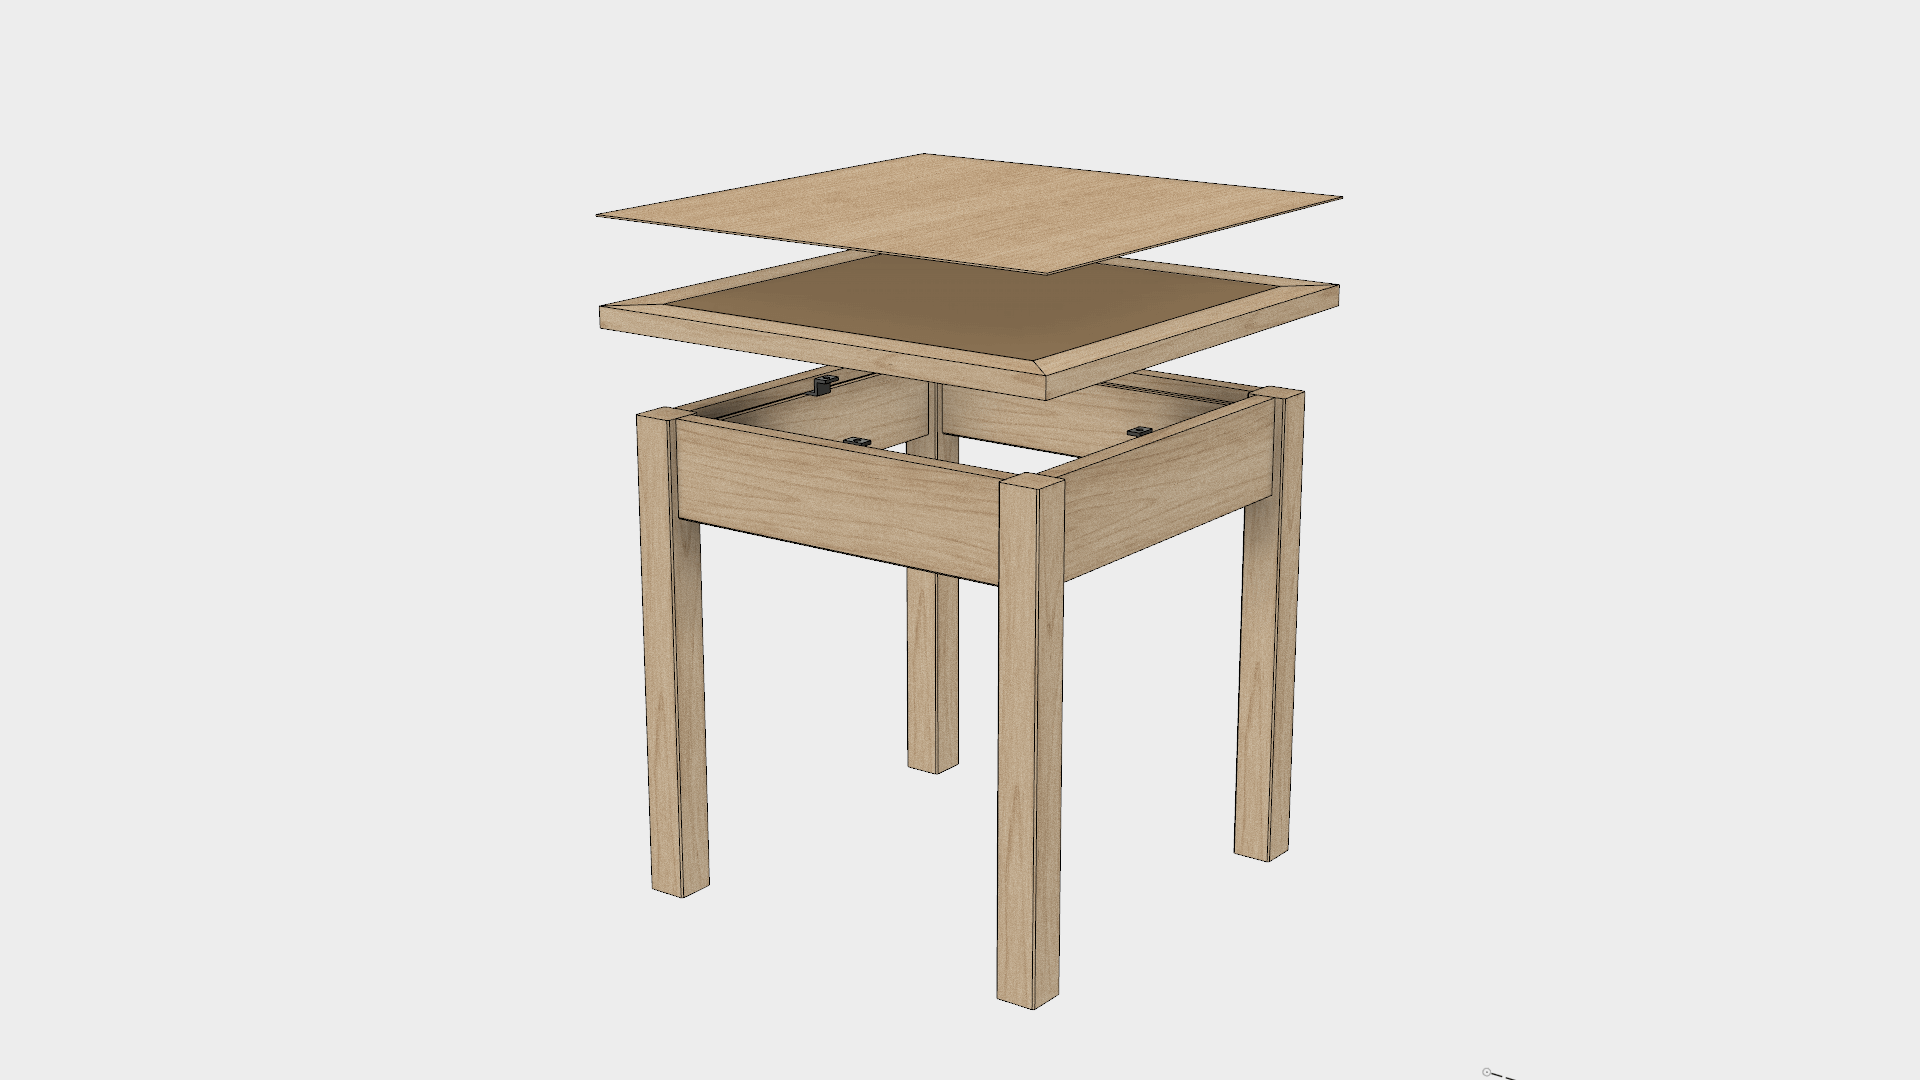 The Top 10 Design Software For Woodworking You Should Know 7routertables